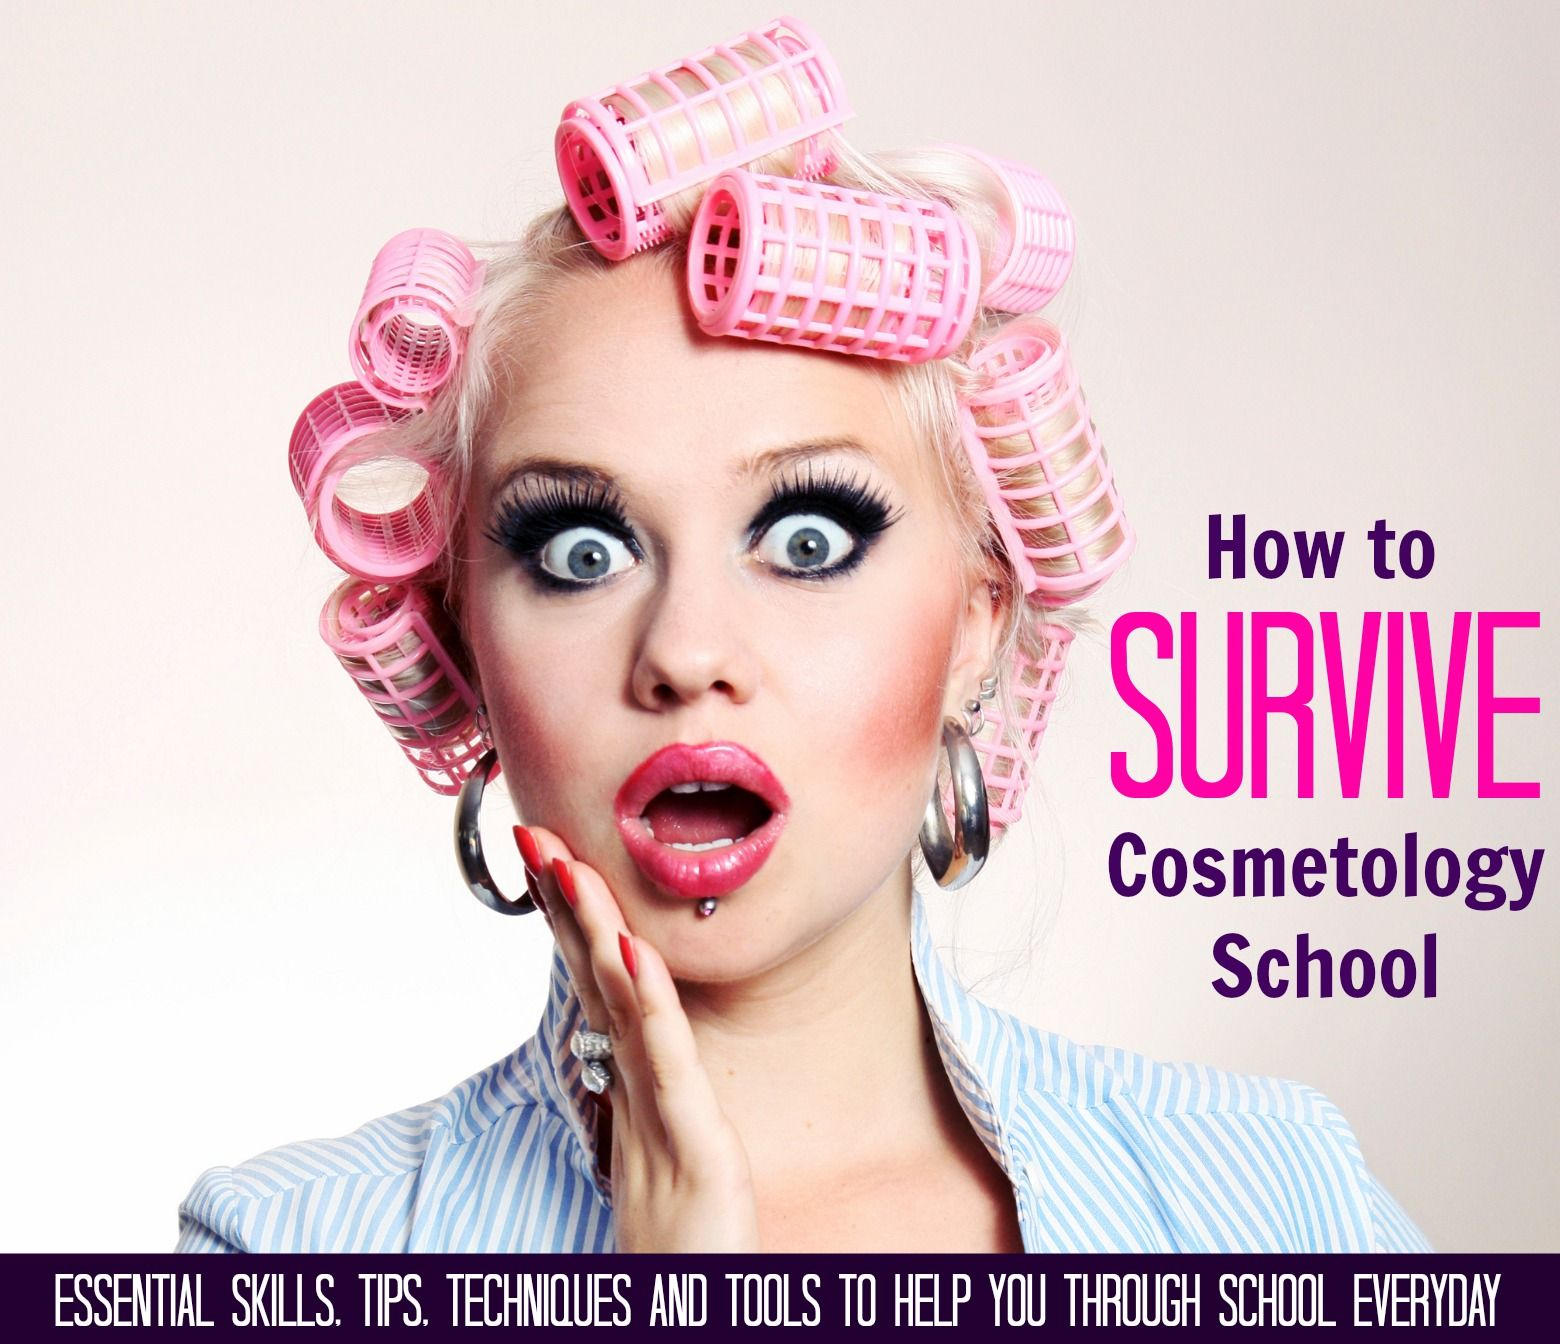 The Cosmetology School Survival Guide Cosmetology